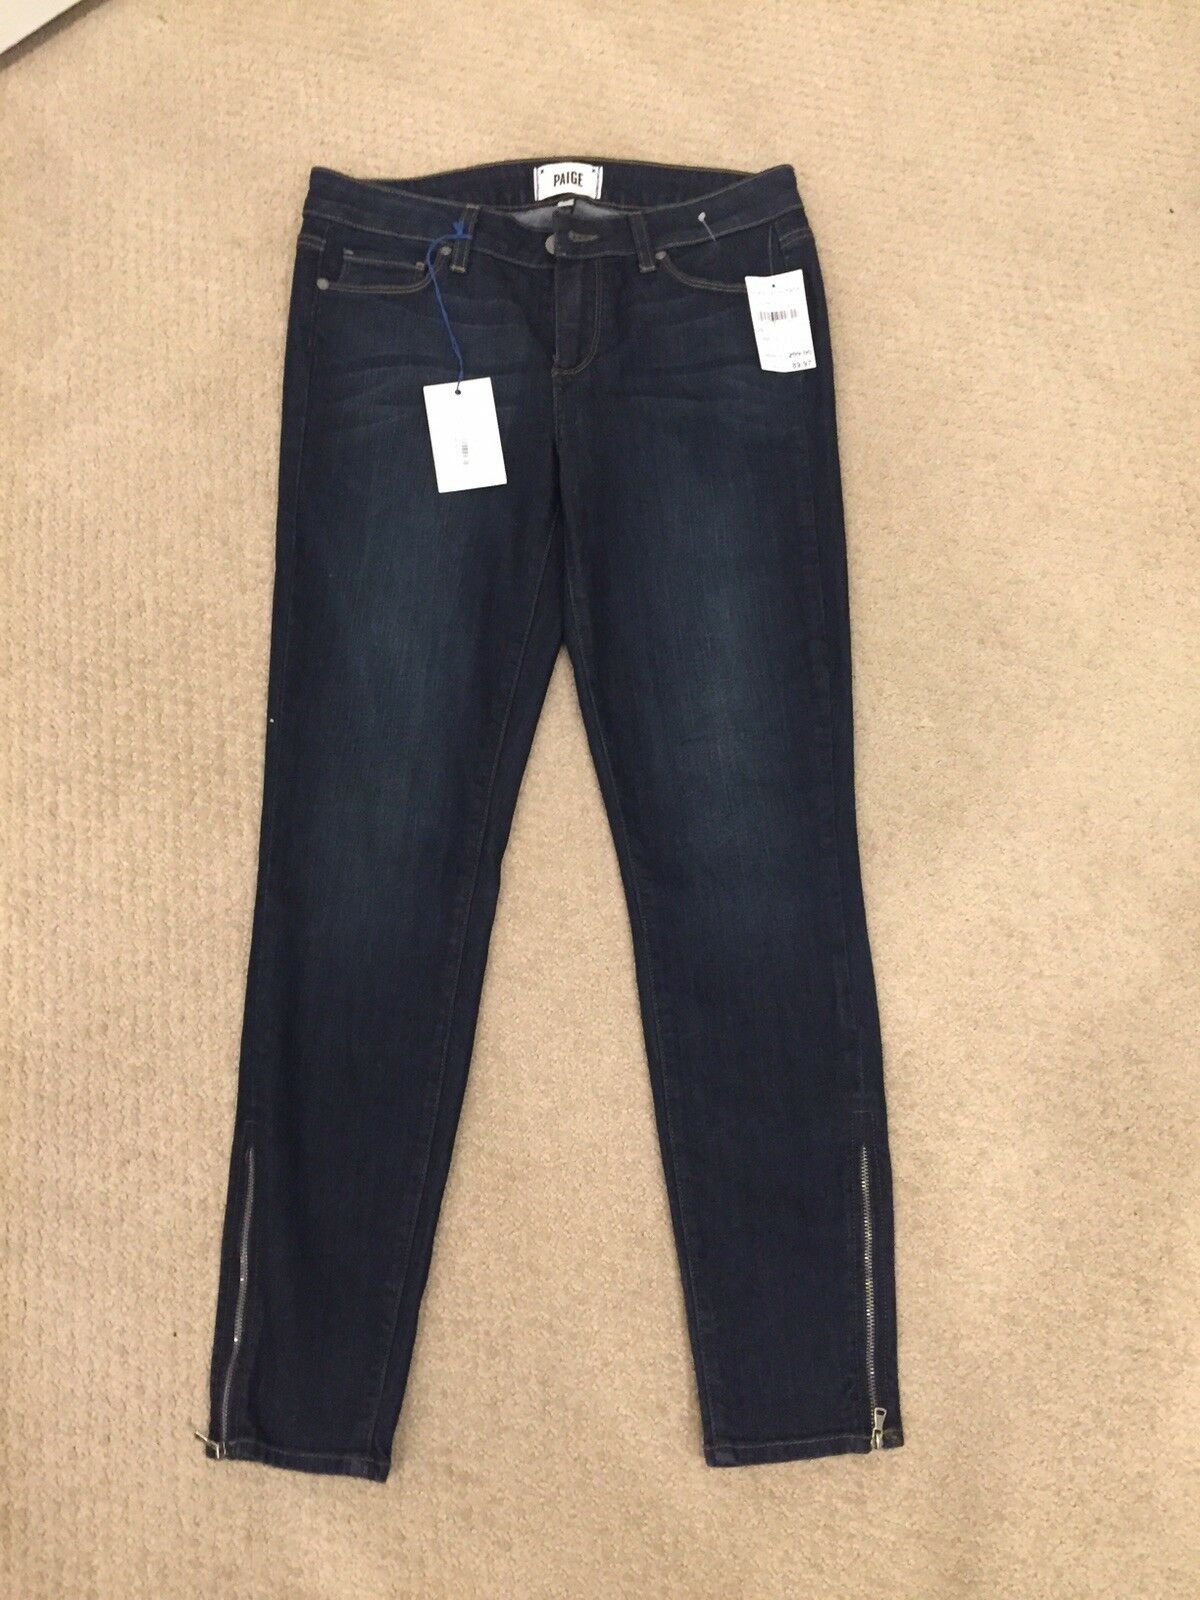 PAIGE DENIM   VERDUGO  ANKLE ZIPSKINNY STRETCH JEANS  Sz 29   NEW